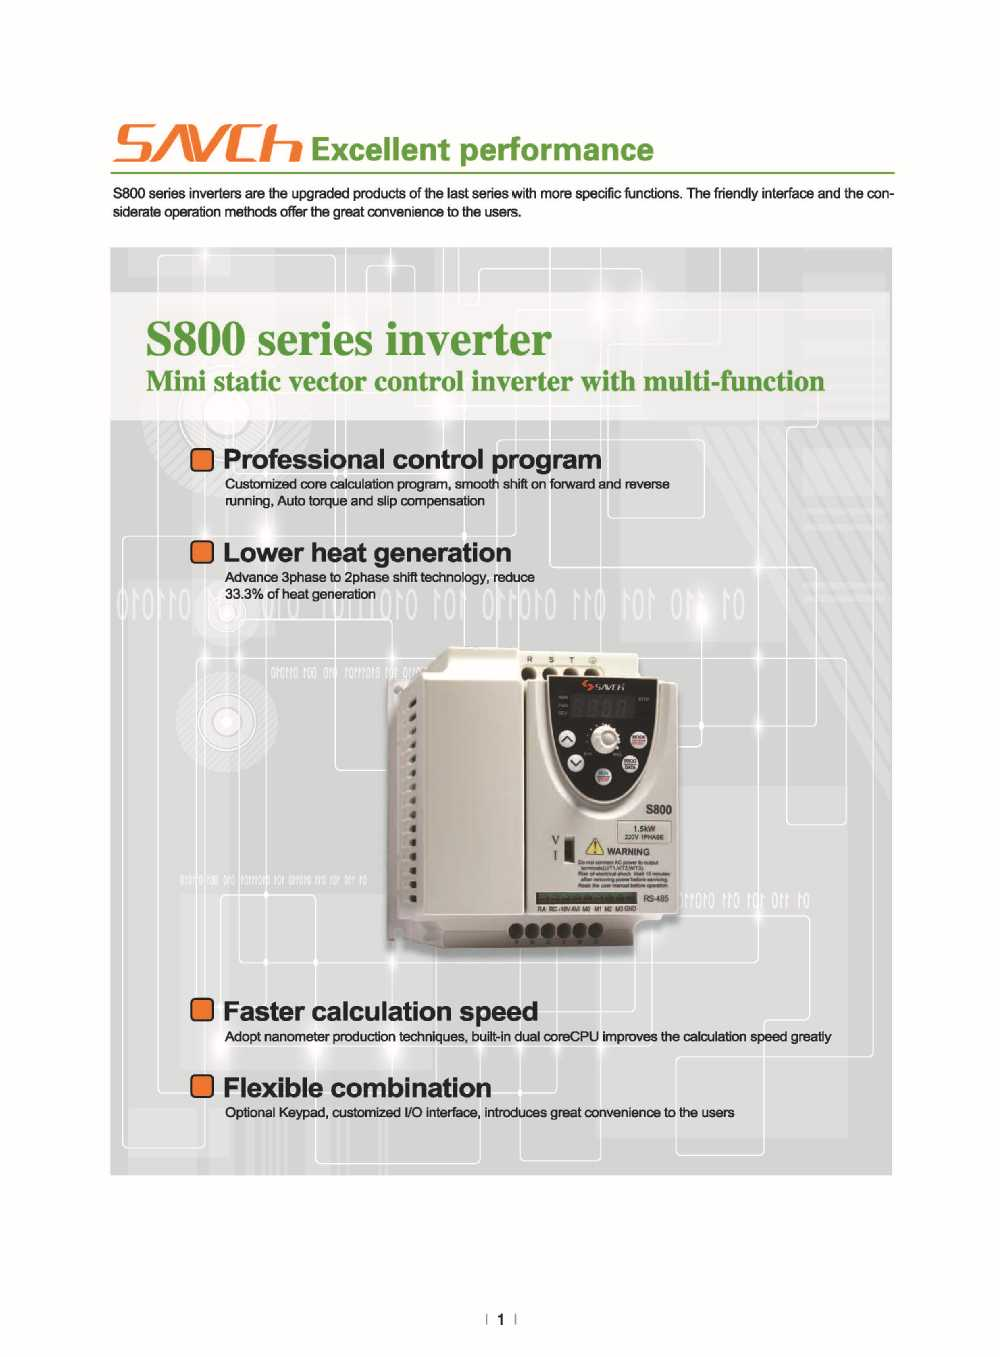 Sanch S800 compact size economic type 200v 220v 230v 240v ac single phase to 3-phase inverter